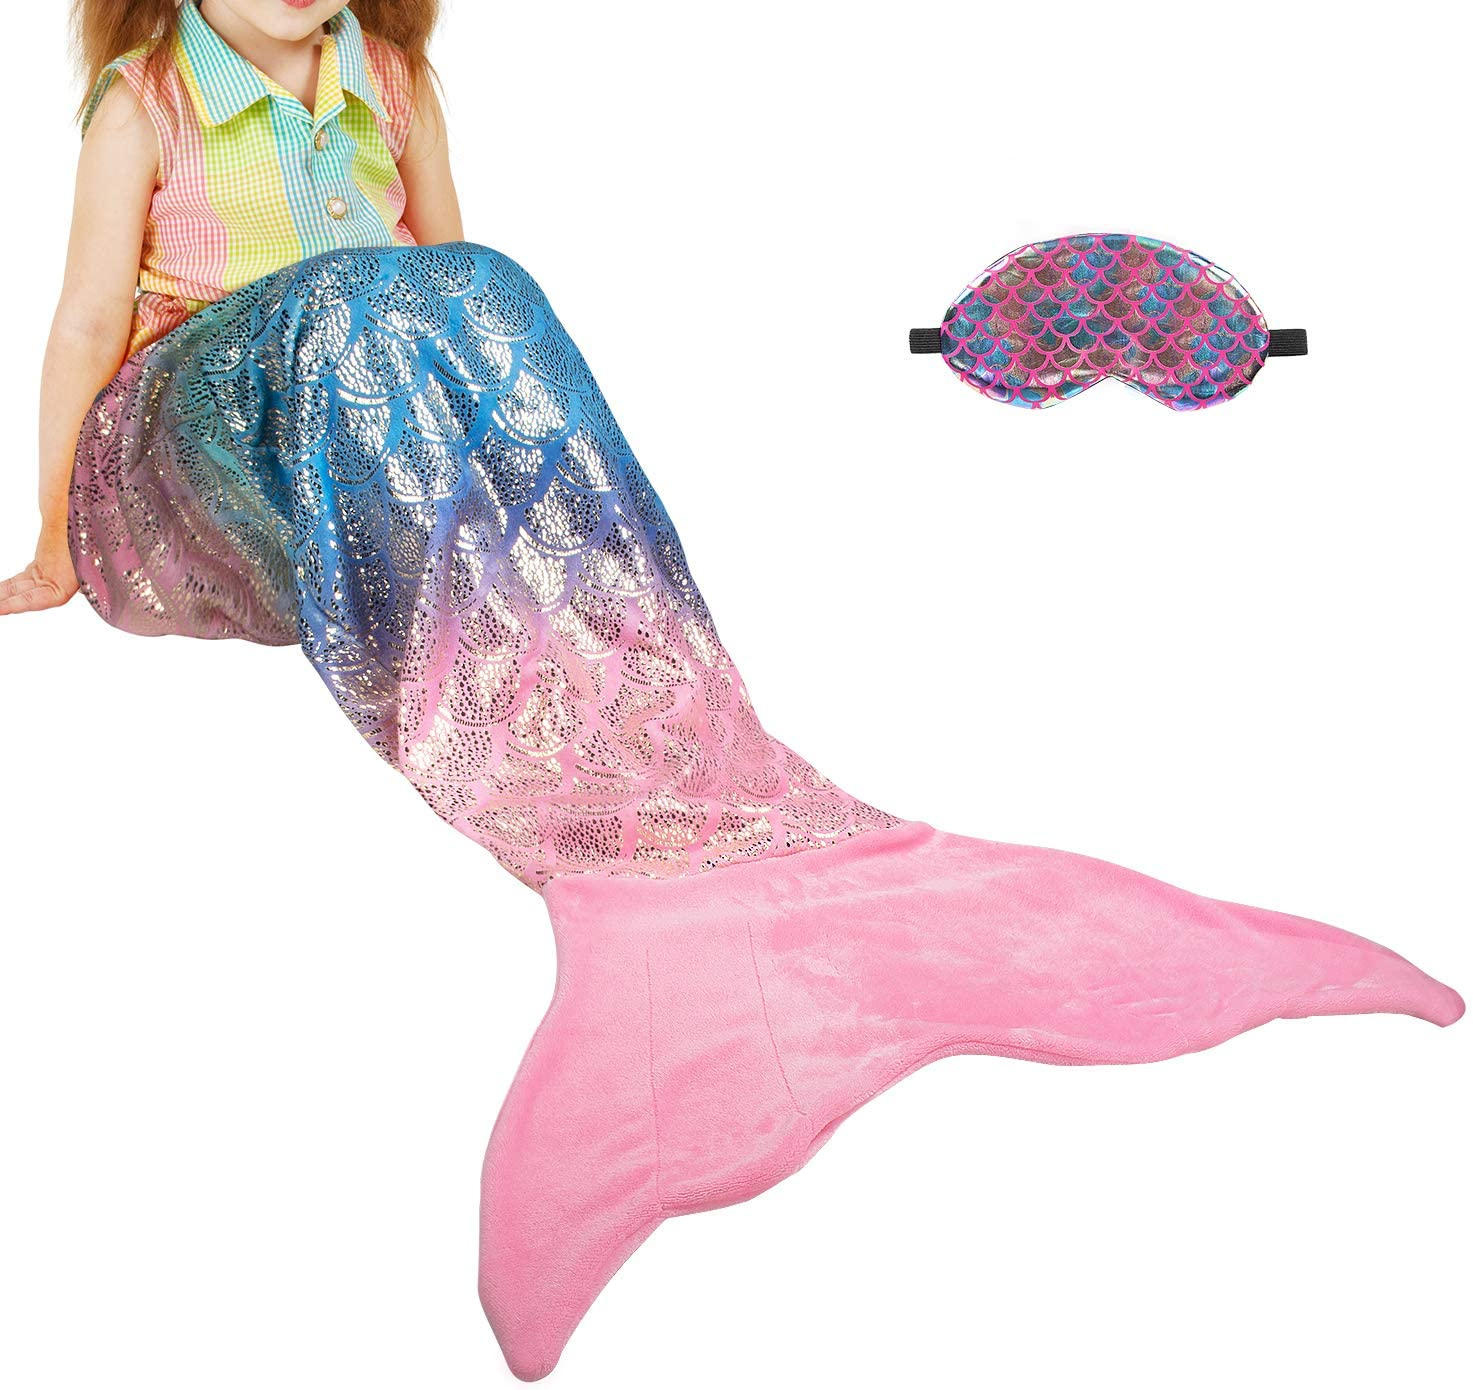 Catalonia Kids Mermaid Tail Blanket with Sleep Mask, Super Soft Plush Sleeping Snuggle Blanket for Teen Girls, Fish Scale Pattern, Gift Idea, Rainbow Ombre